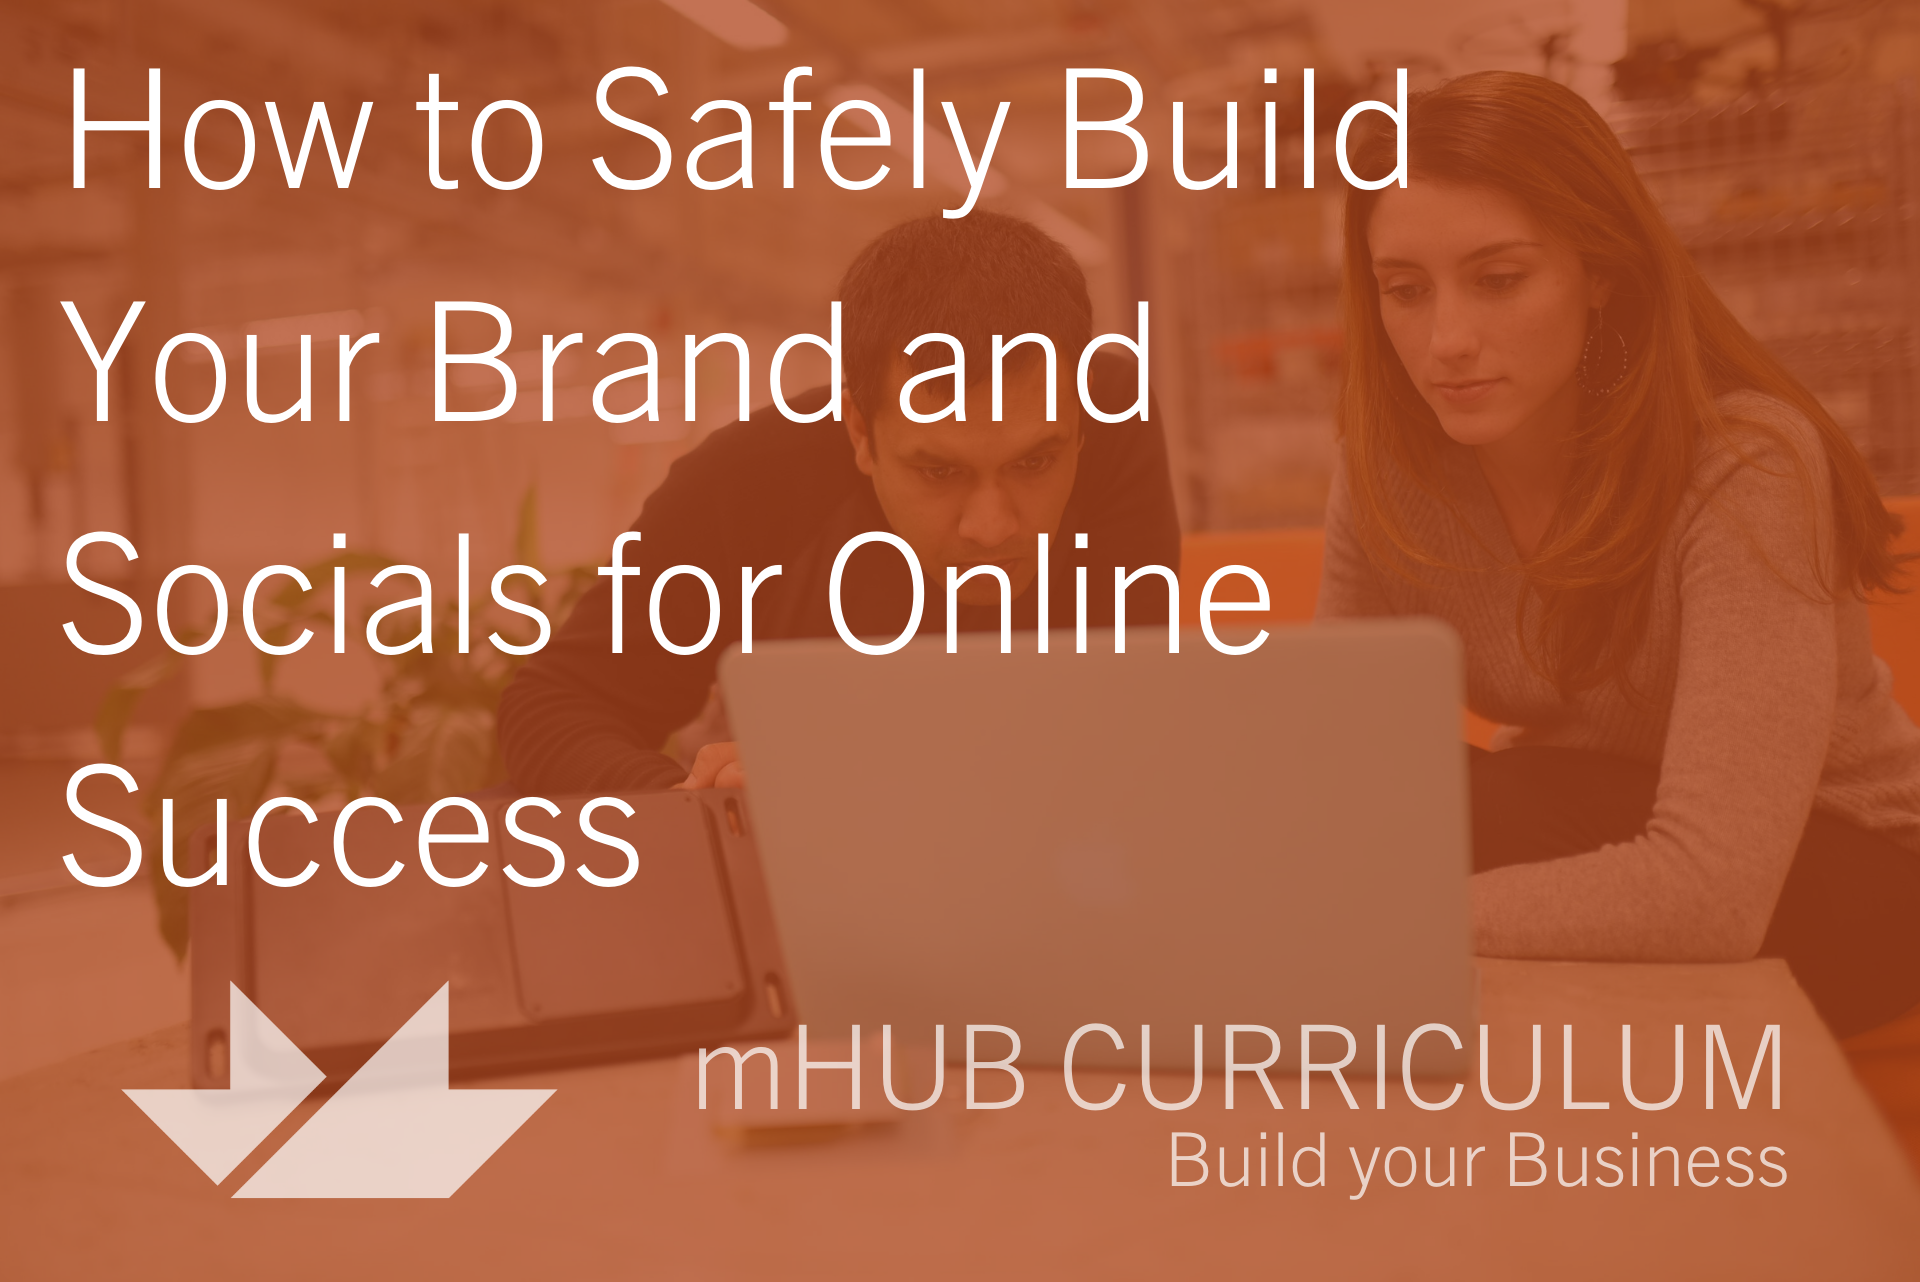 Lunch and Learn: How to Safely Build Your Brand and Socials for Online Success